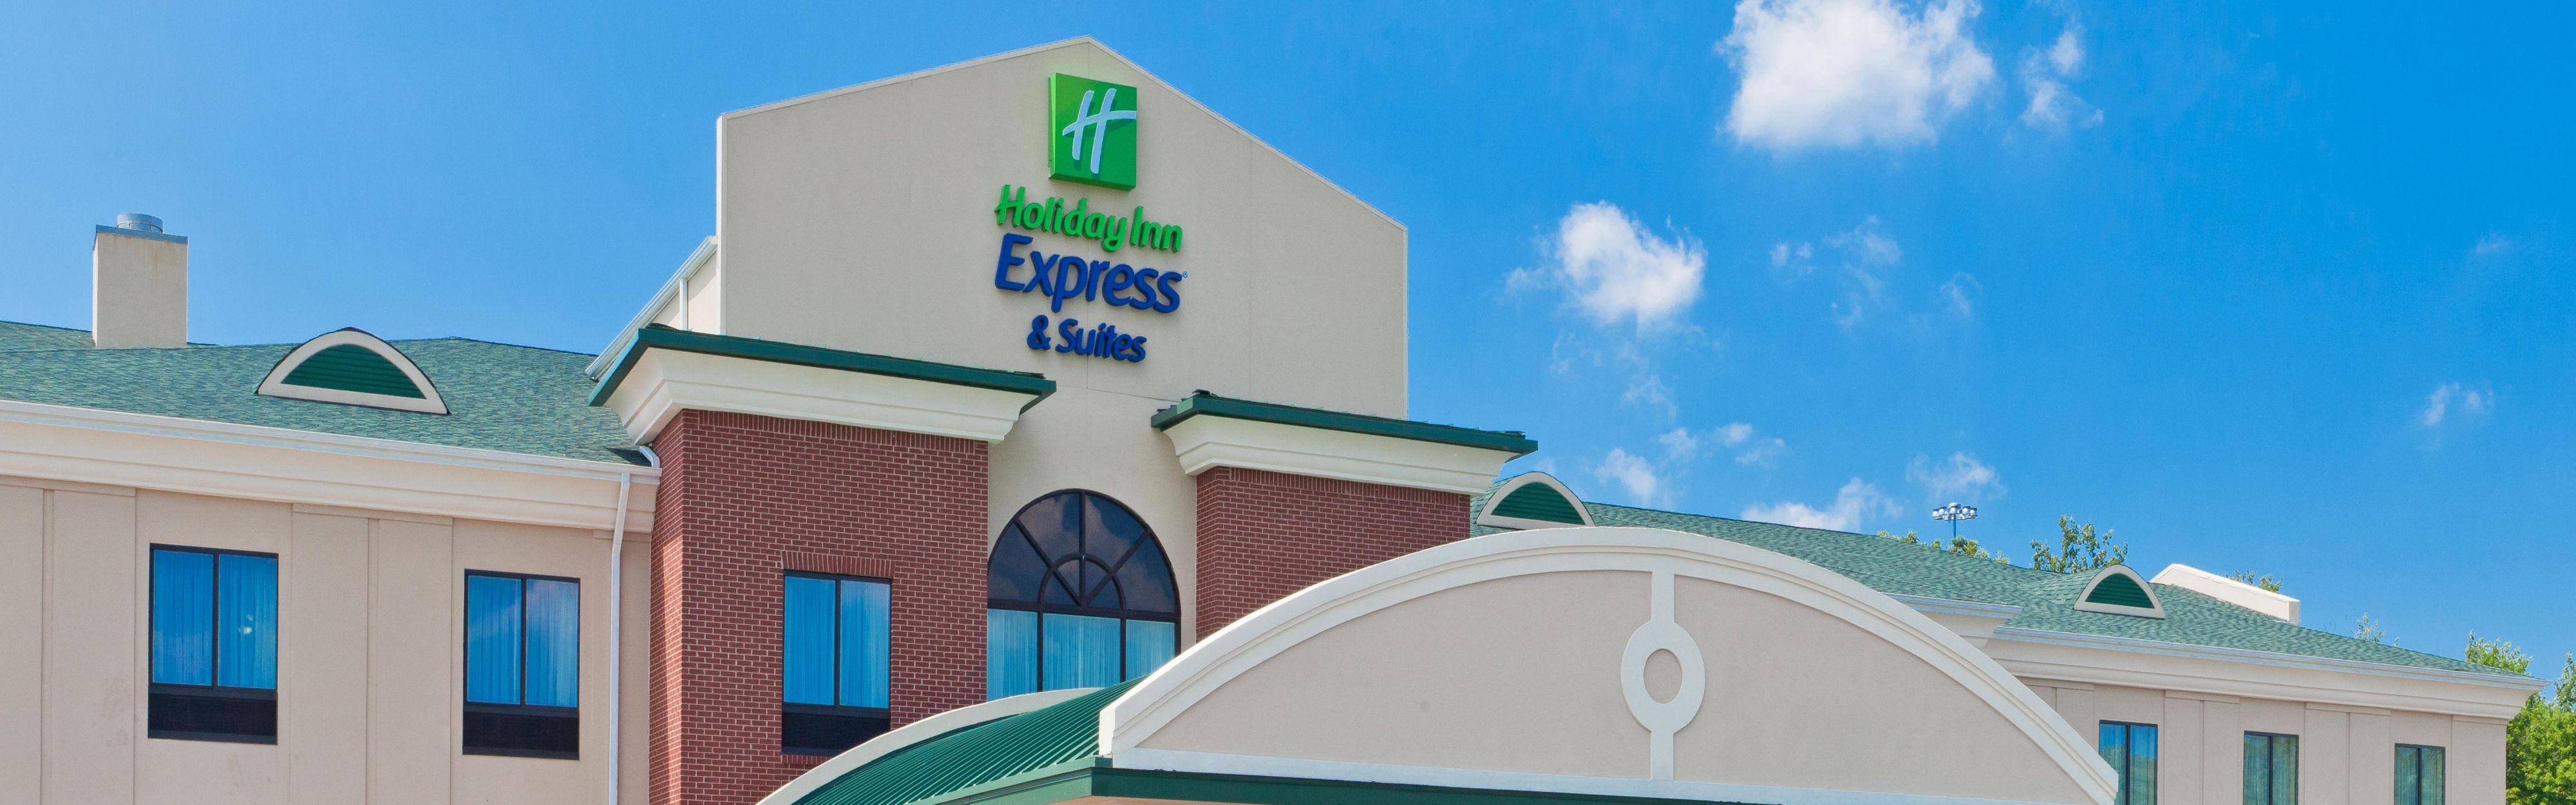 Holiday Inn Express & Suites White Haven - Poconos image 0